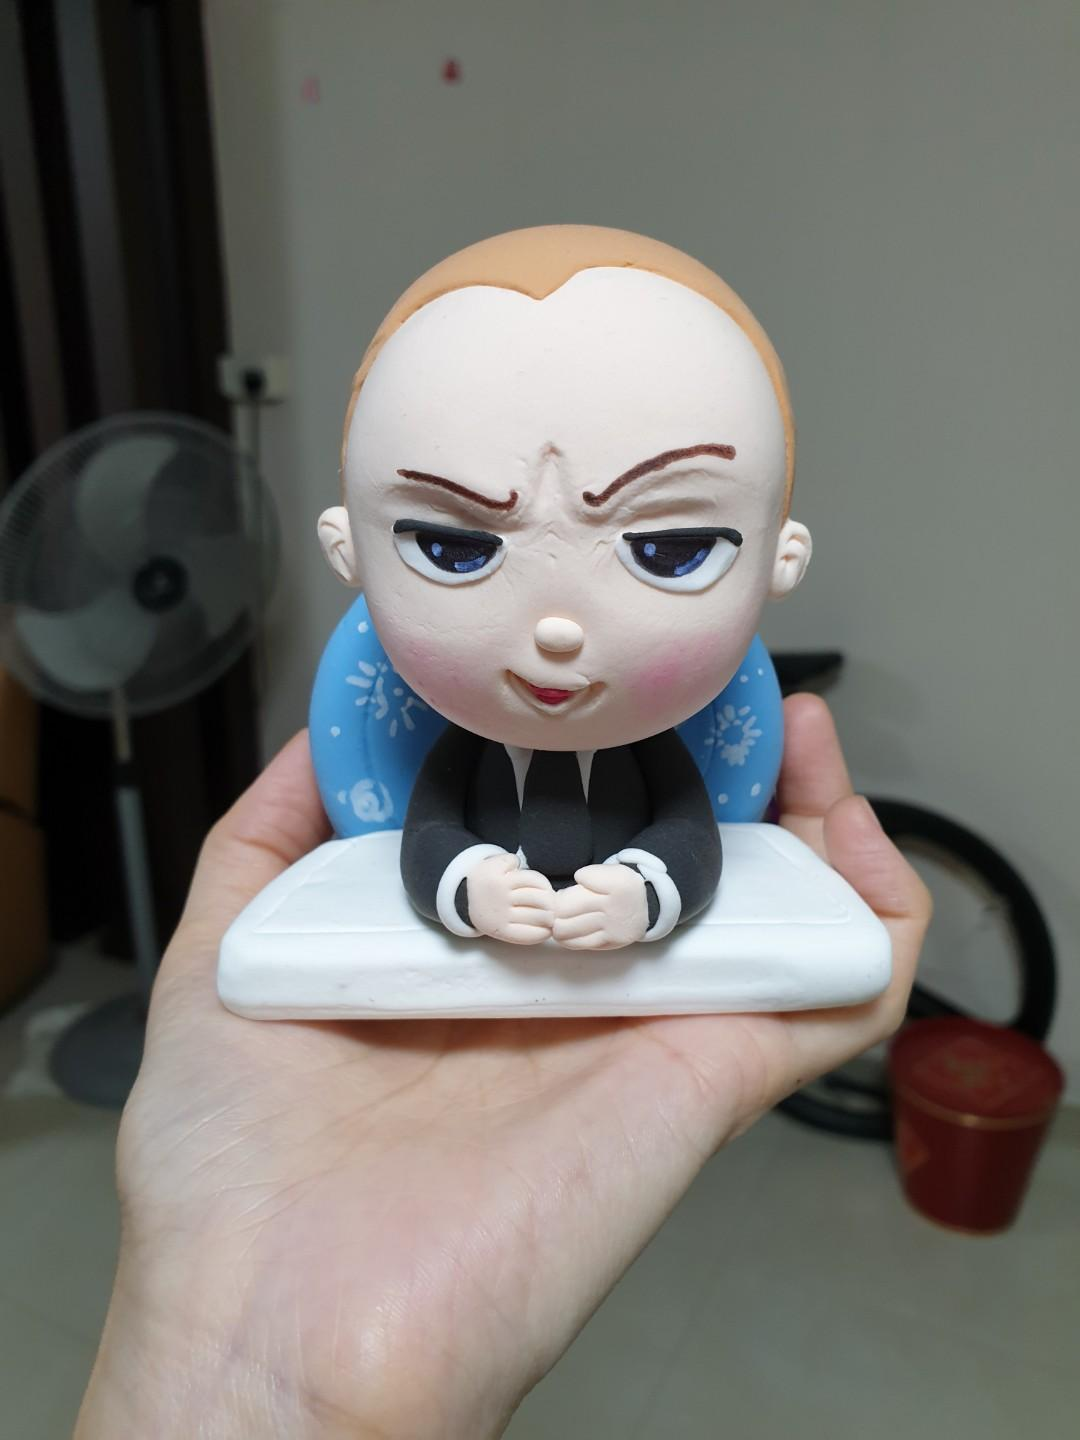 Baby boss cake topper - air dry clay